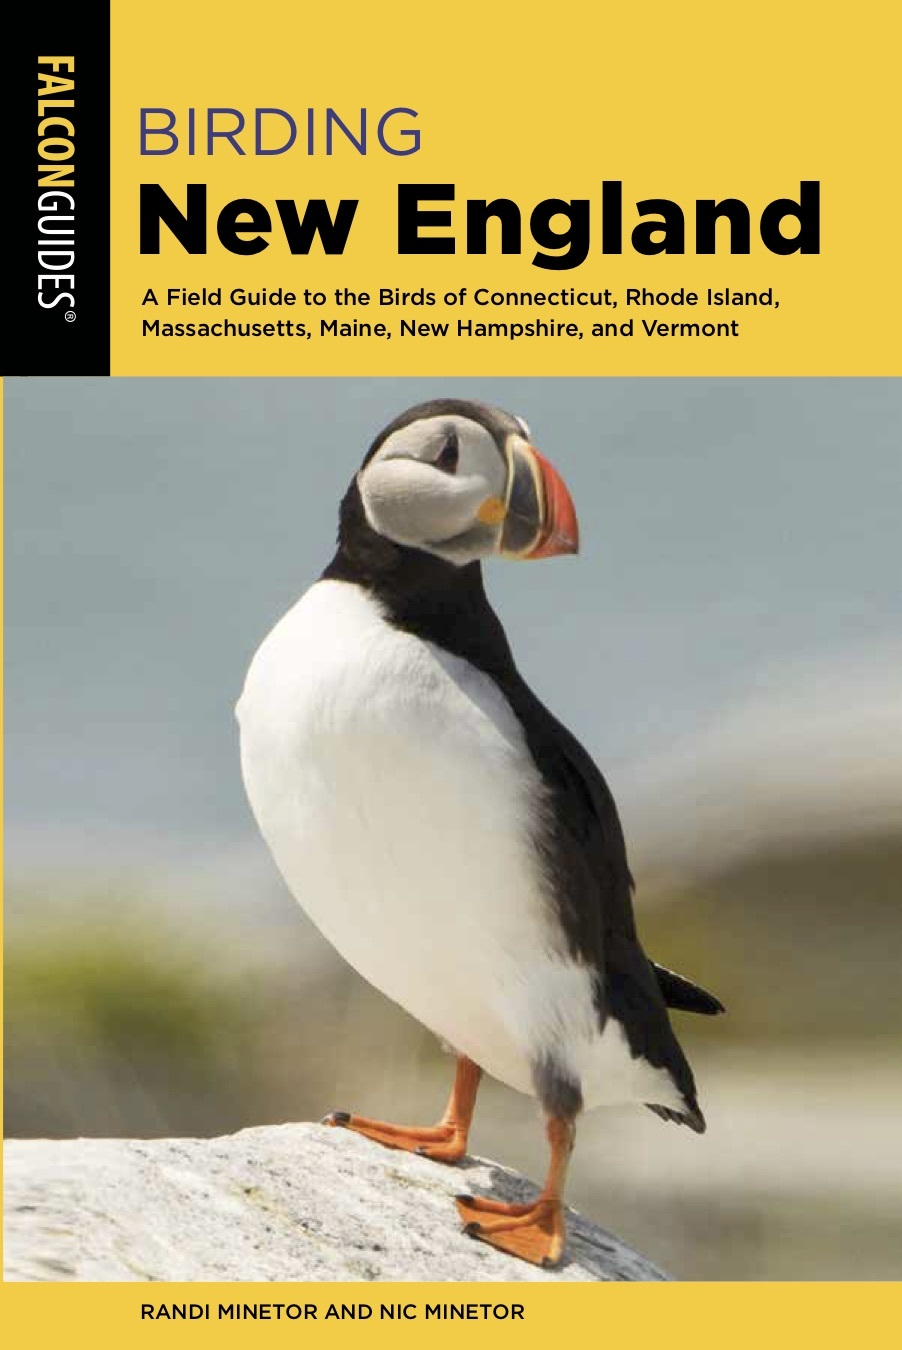 Birding newengland front cover